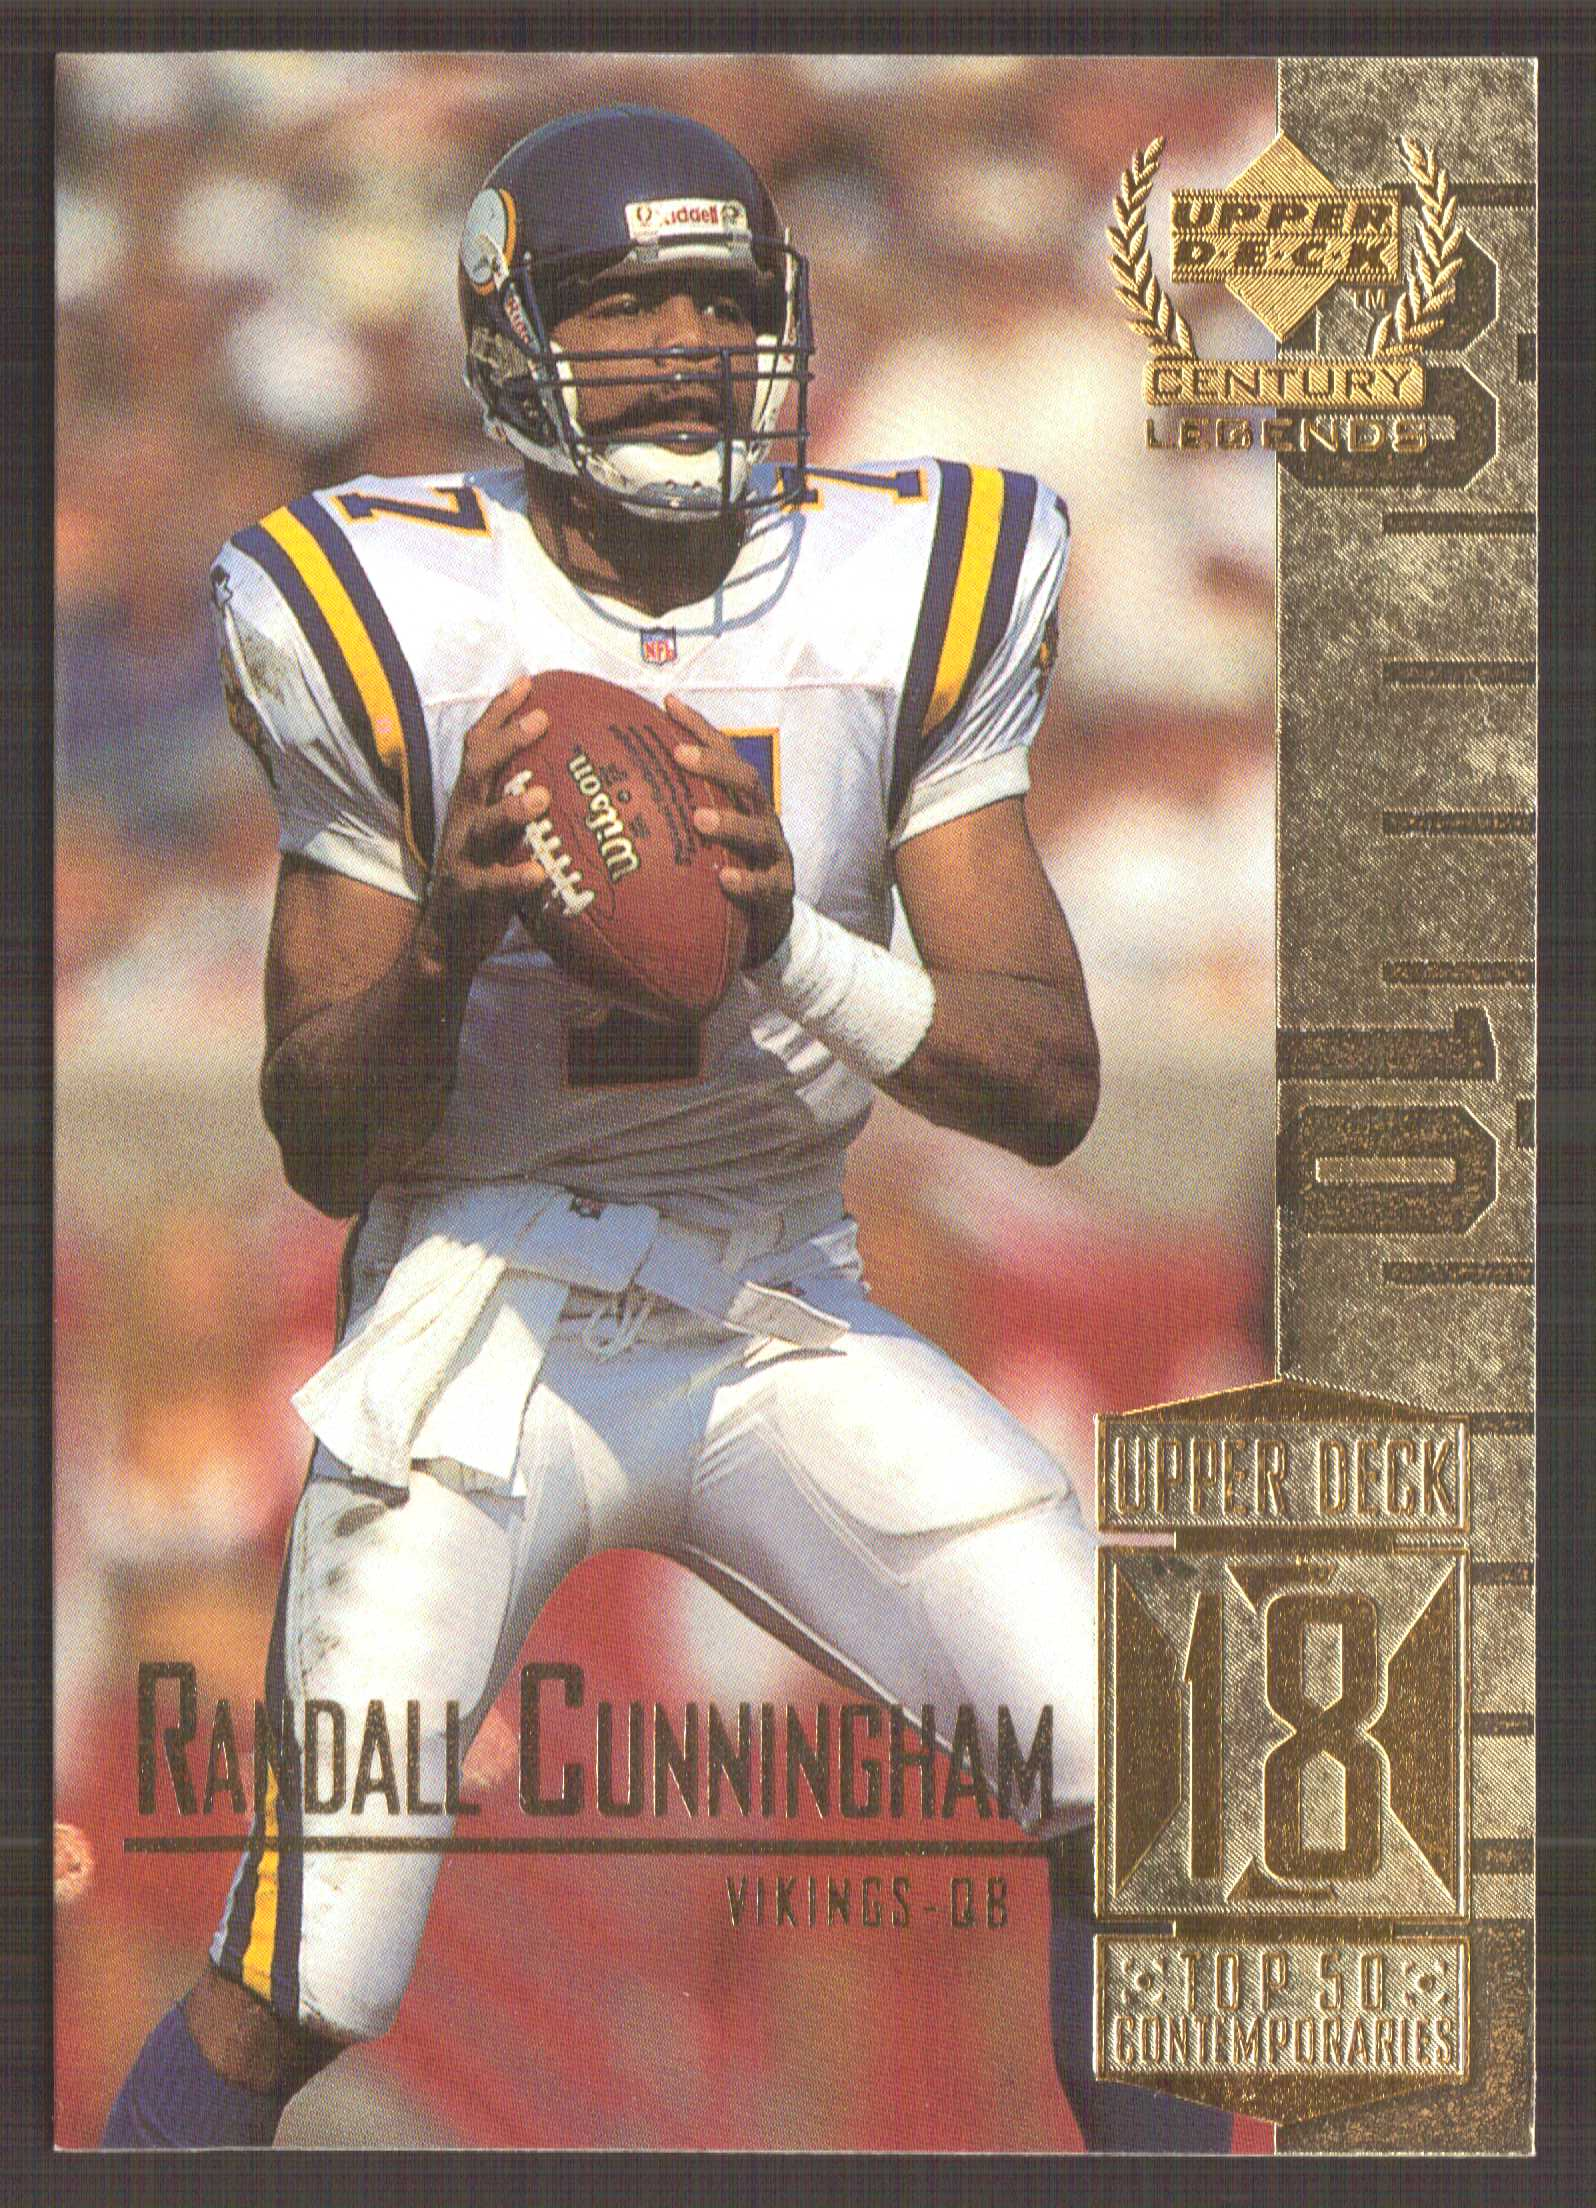 1999 Upper Deck Century Legends #68 Randall Cunningham